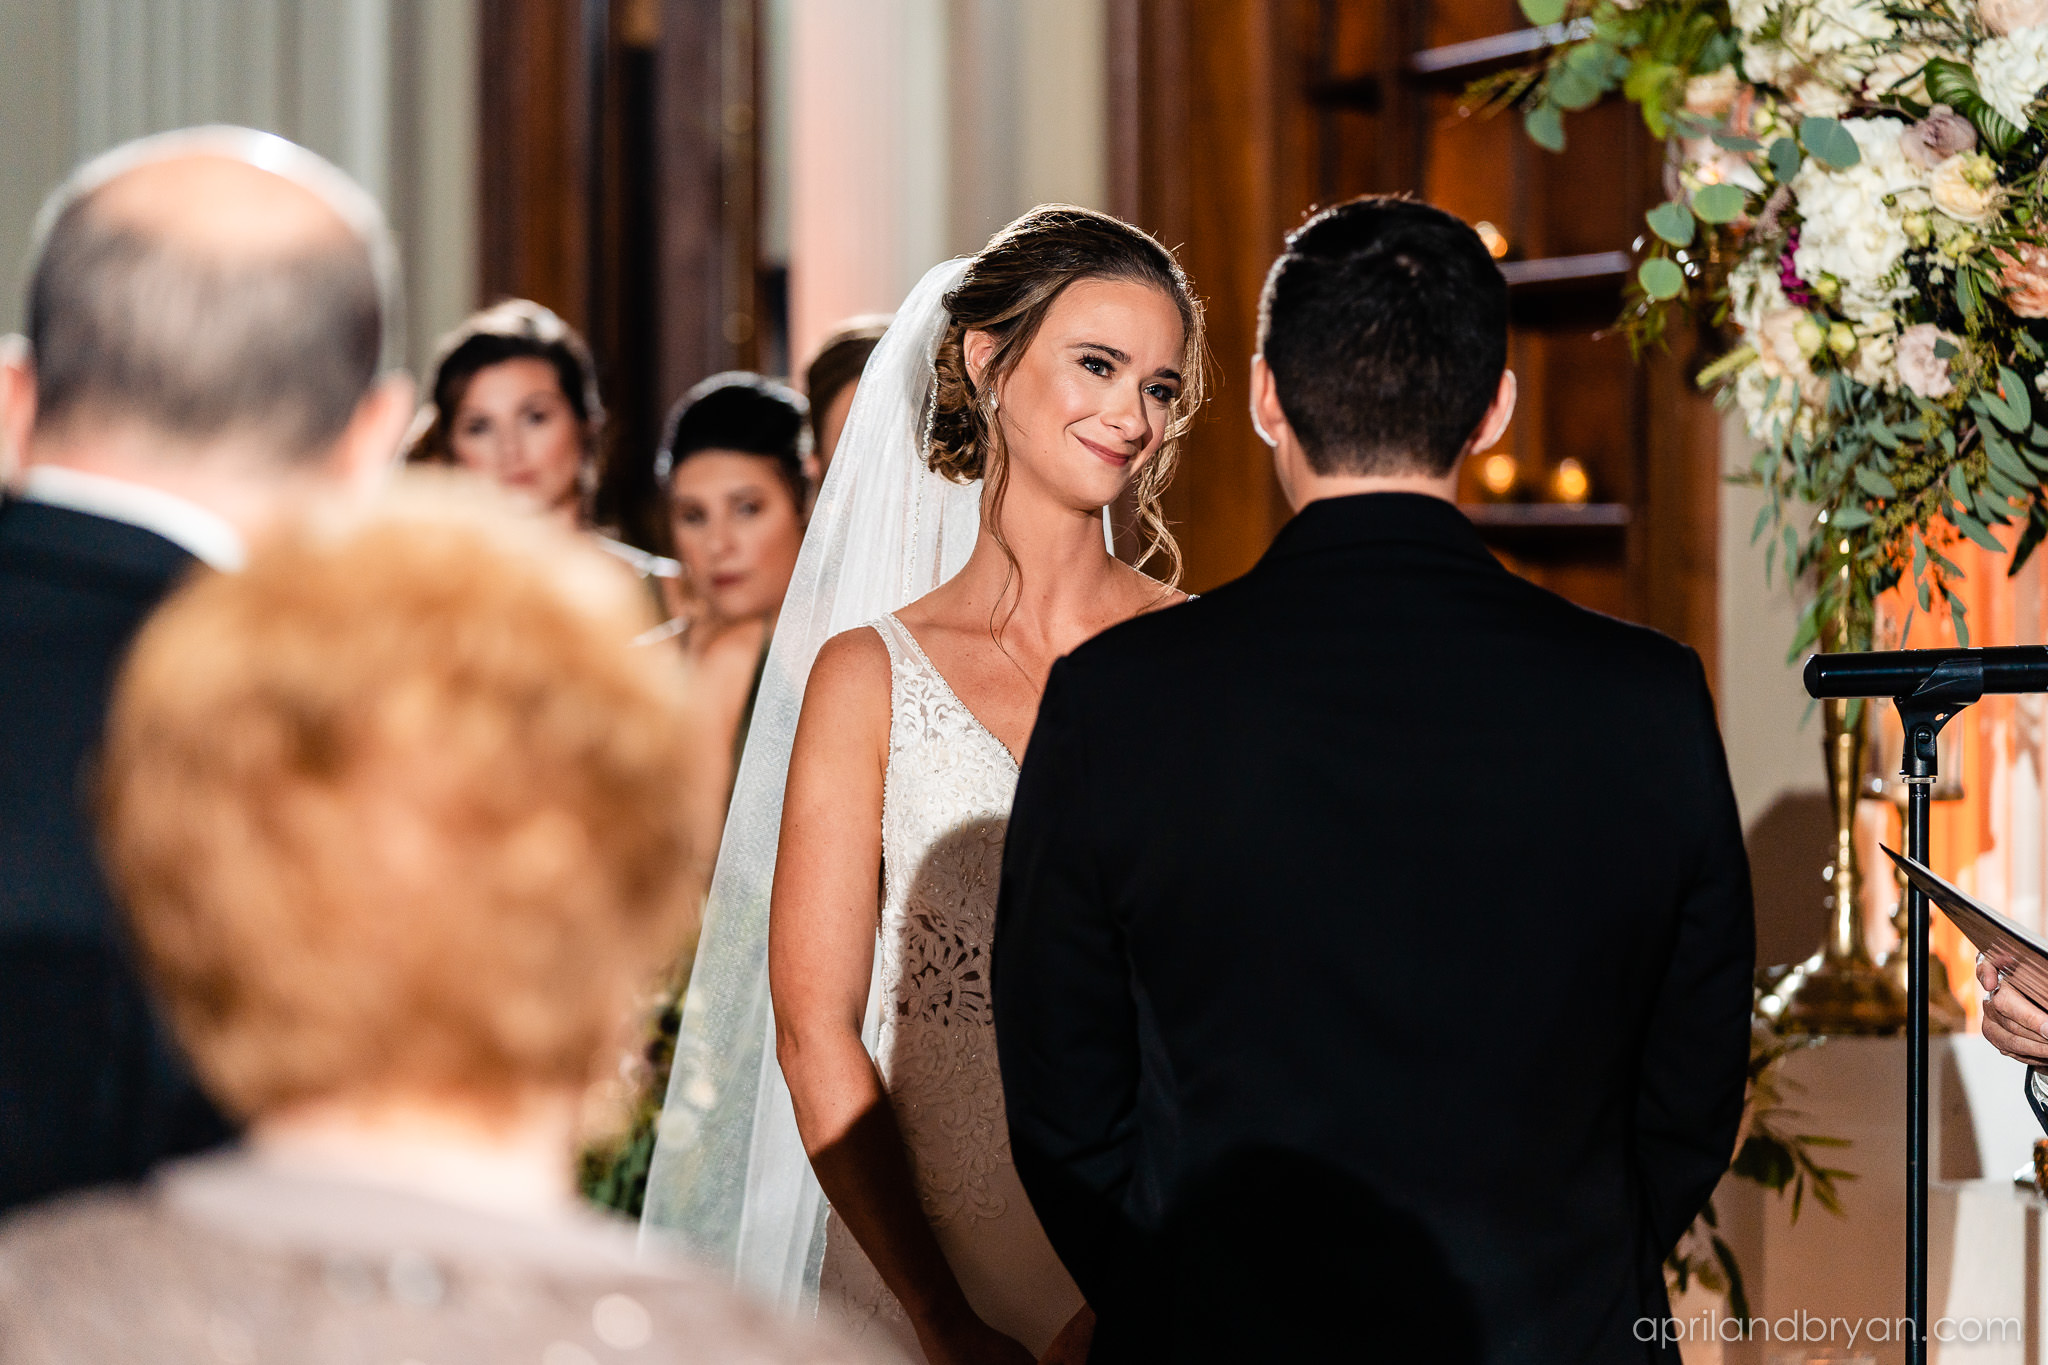 A lover's gaze captured by April & Bryan Photography. Featured on Dream Weddings.